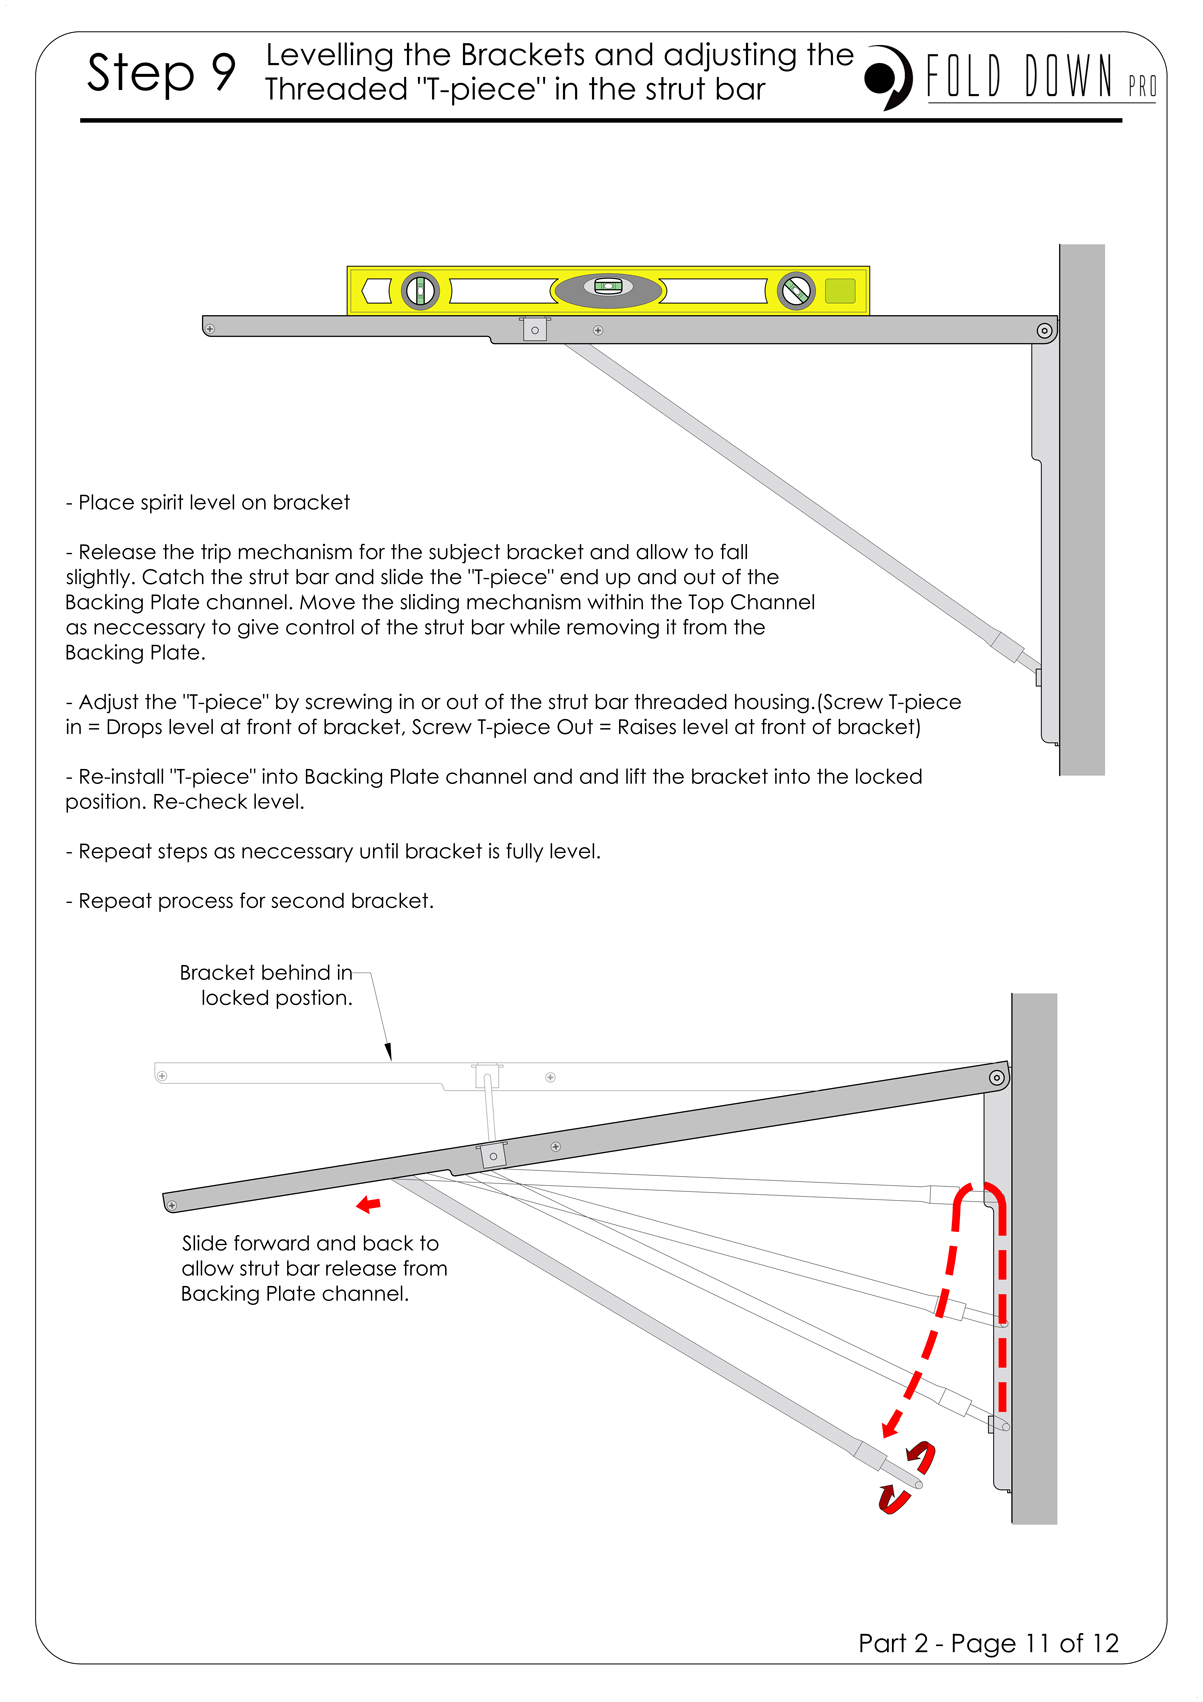 FDP Wall Mounted Folding Bracket Instruction Page 11